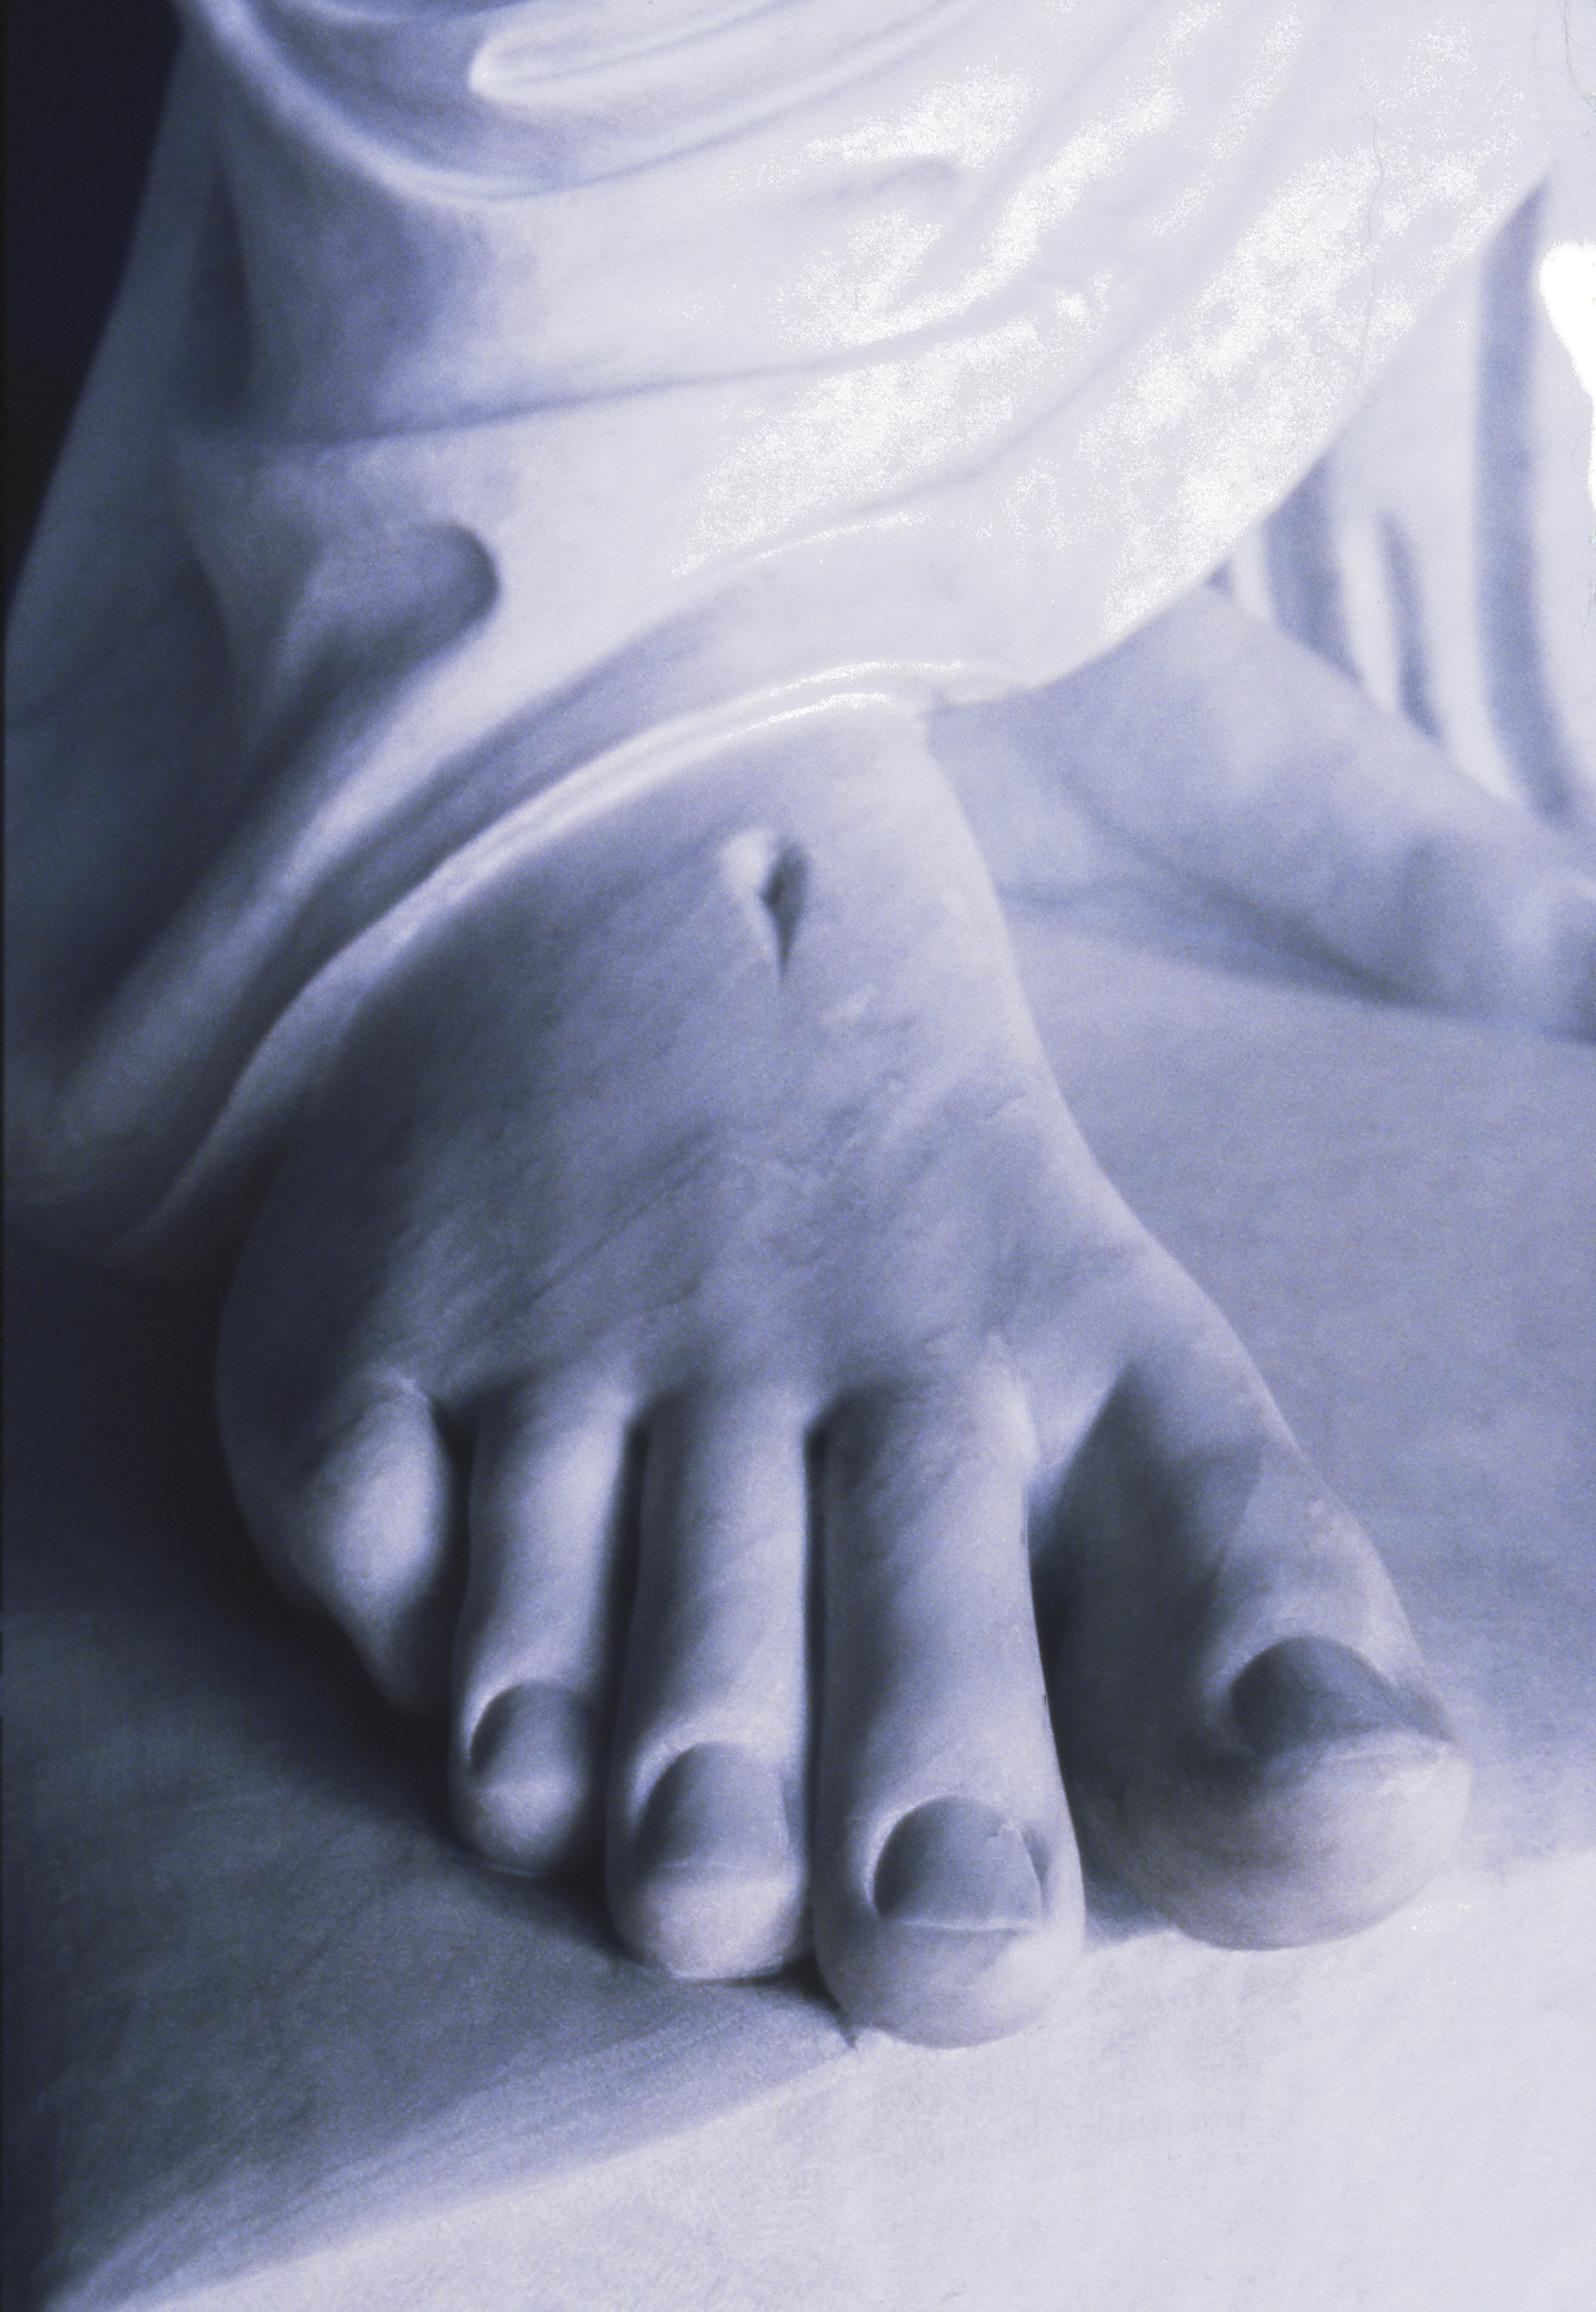 A detail of the foot of the replica of Bertel Thorvaldsen's Christus statue in the Salt Lake North Visitors' Center.